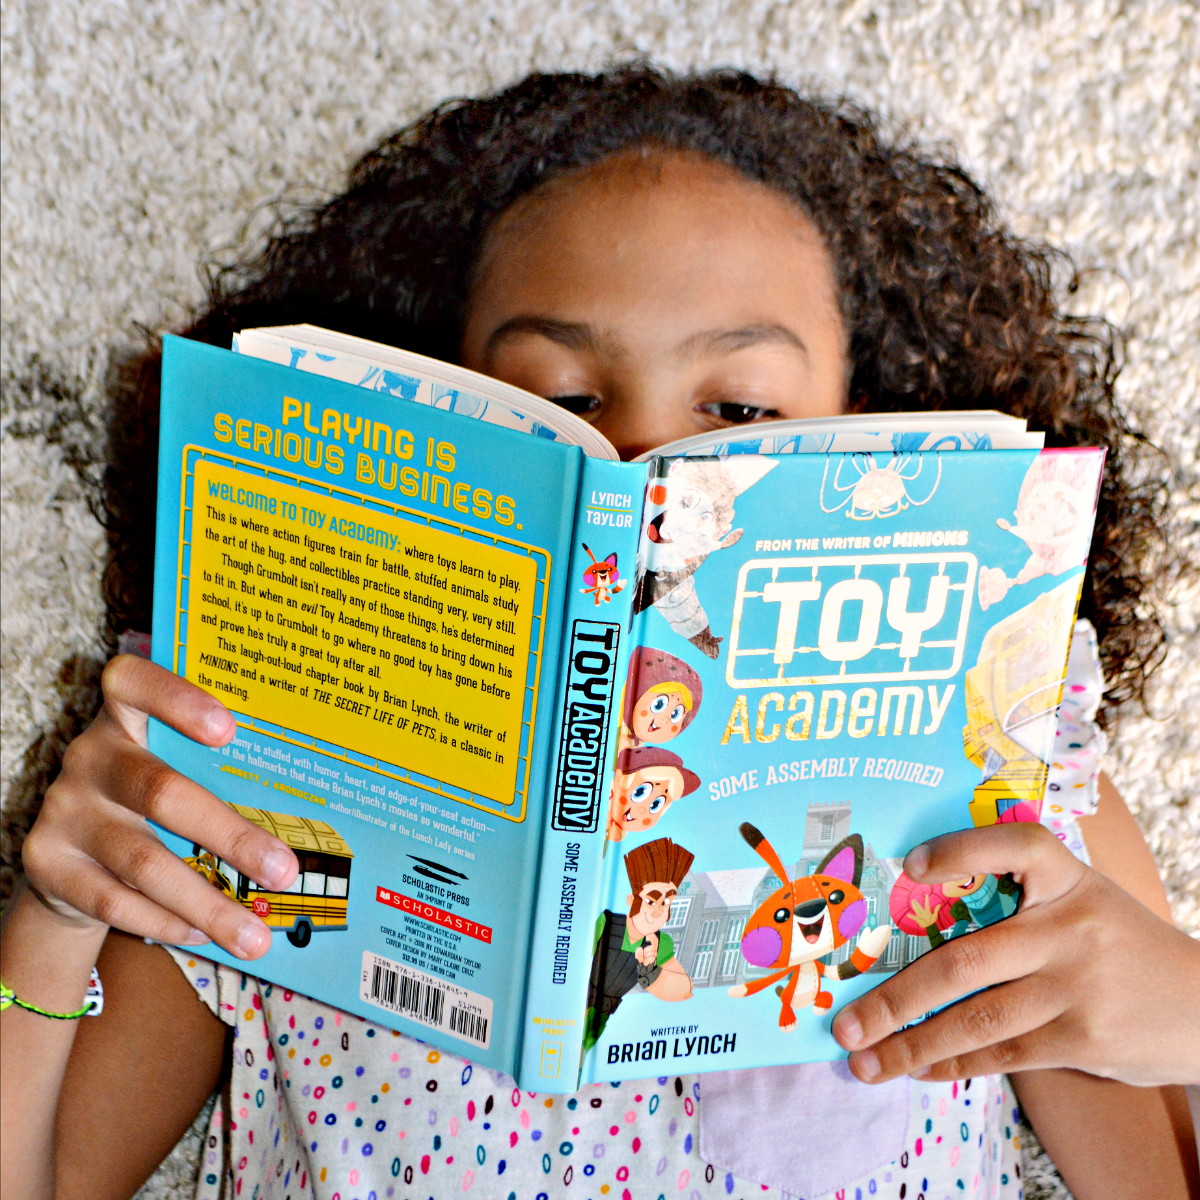 Toy Academy: Some Assembly Required is a laugh-out-loud book that is perfect for readers ages 7 - 10. Written by Brian Lynch, the writer of the movies Minions and The Secret Life of Pets, with illustrations by Edwardian Taylor. This fun-filled adventure is sure to make your child giggle.